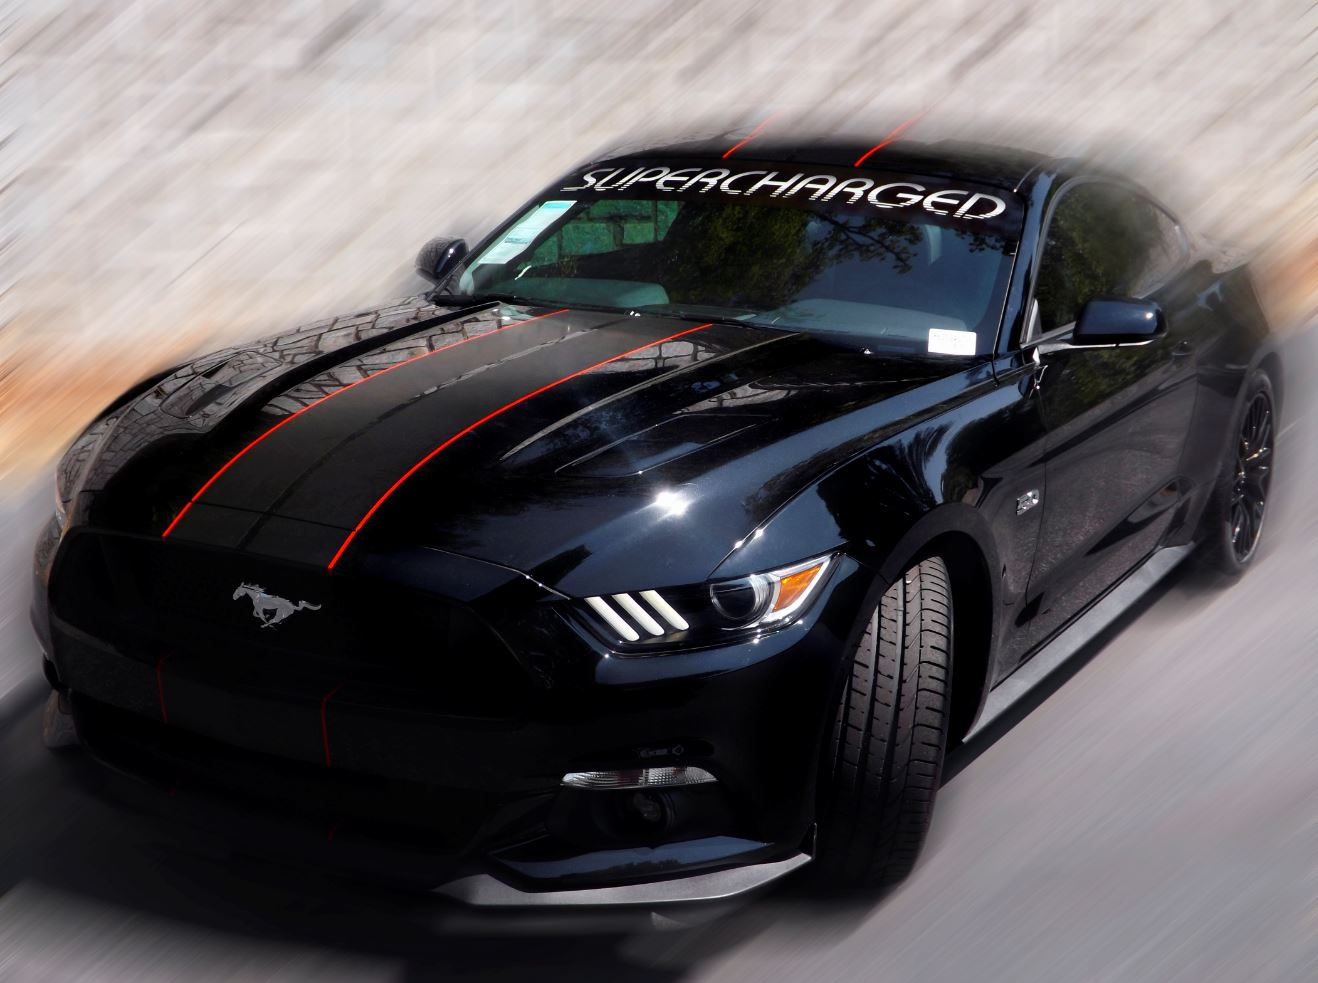 How Much Is A Car Paint Job >> Personal Vehicle Wrap - Extreme Color